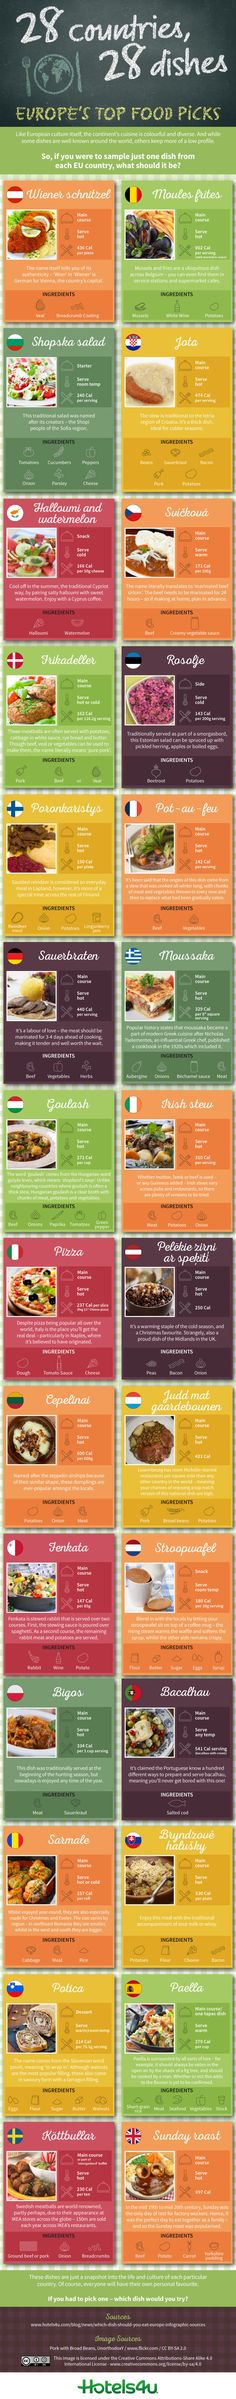 28 Top Dishes From 28 Countries In Europe